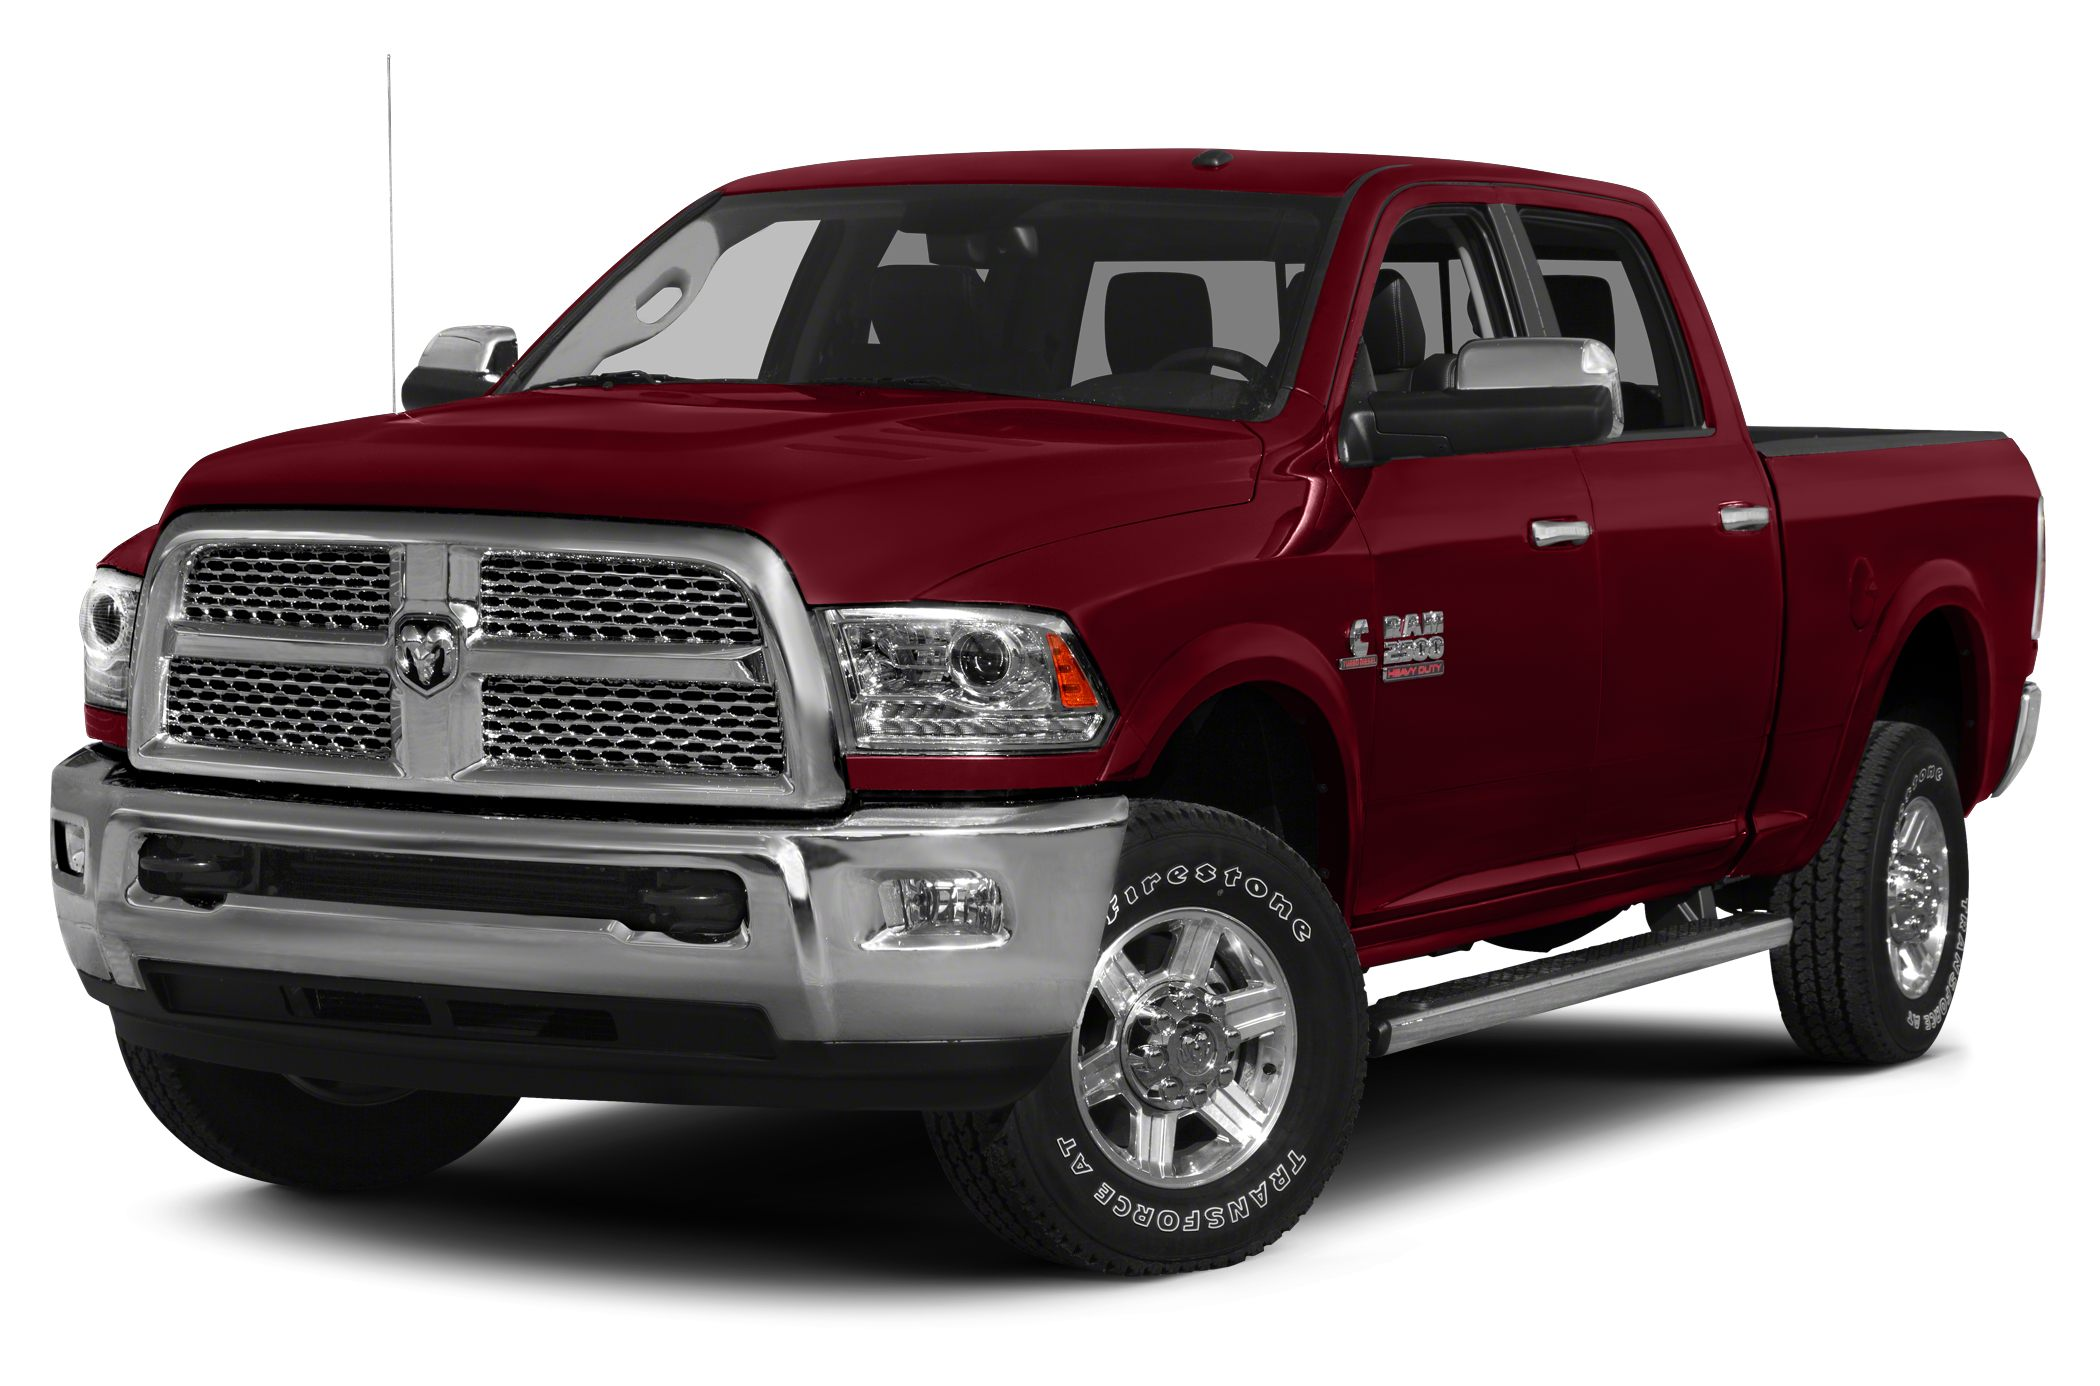 2014 RAM 2500 Laramie Crew Cab Pickup for sale in Waseca for $46,499 with 25,985 miles